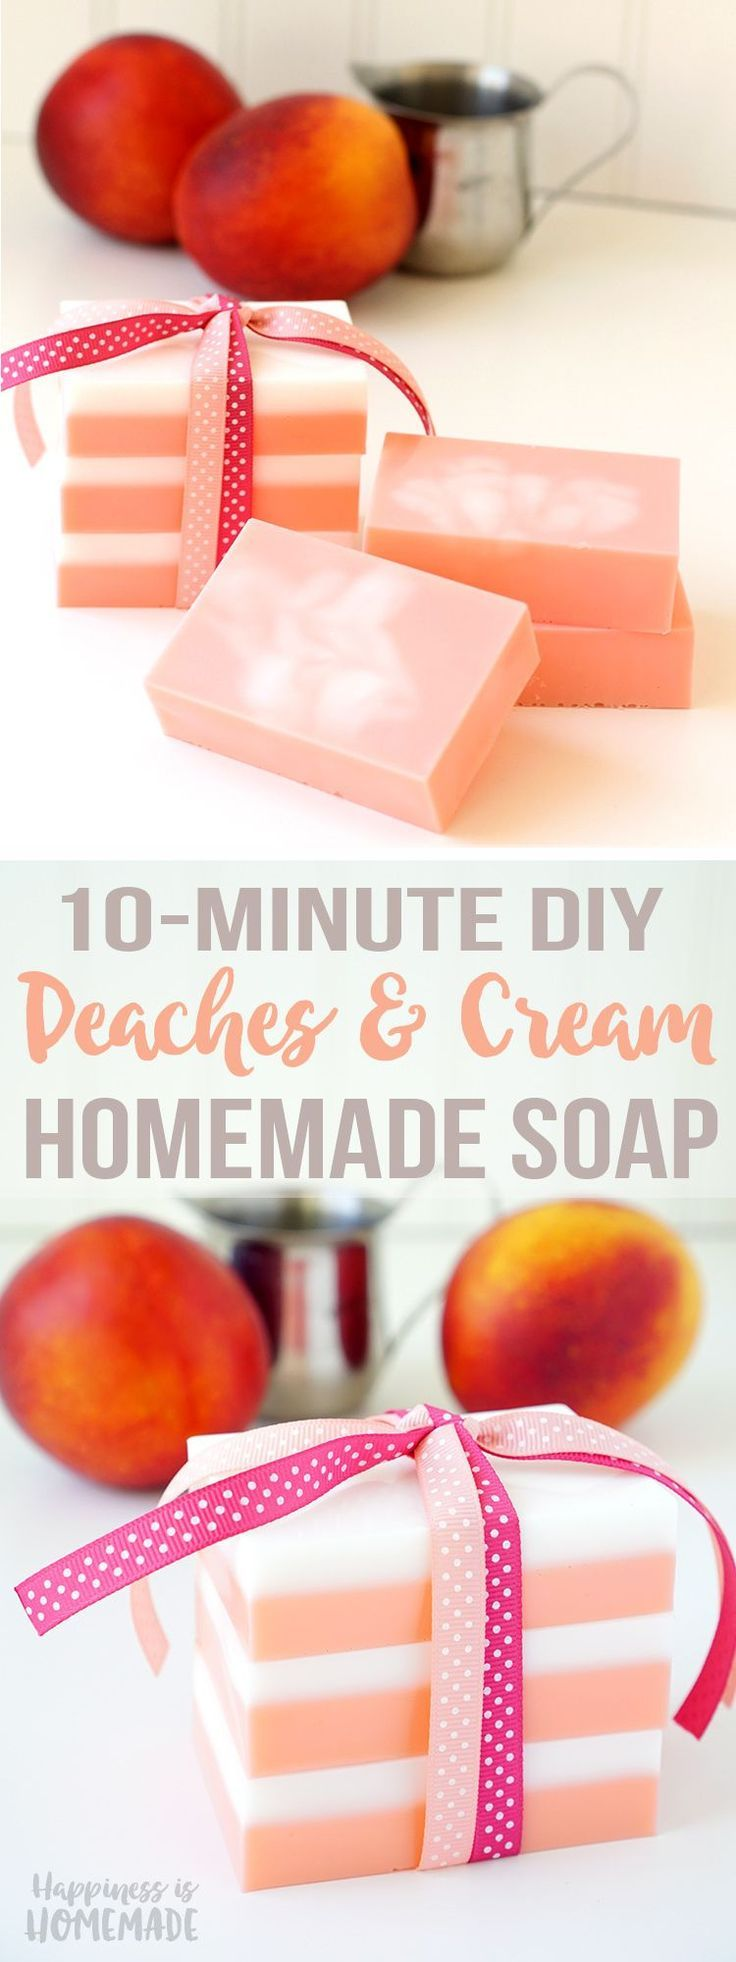 10-Minute DIY Peaches and Cream Soap - Happiness is Homemade